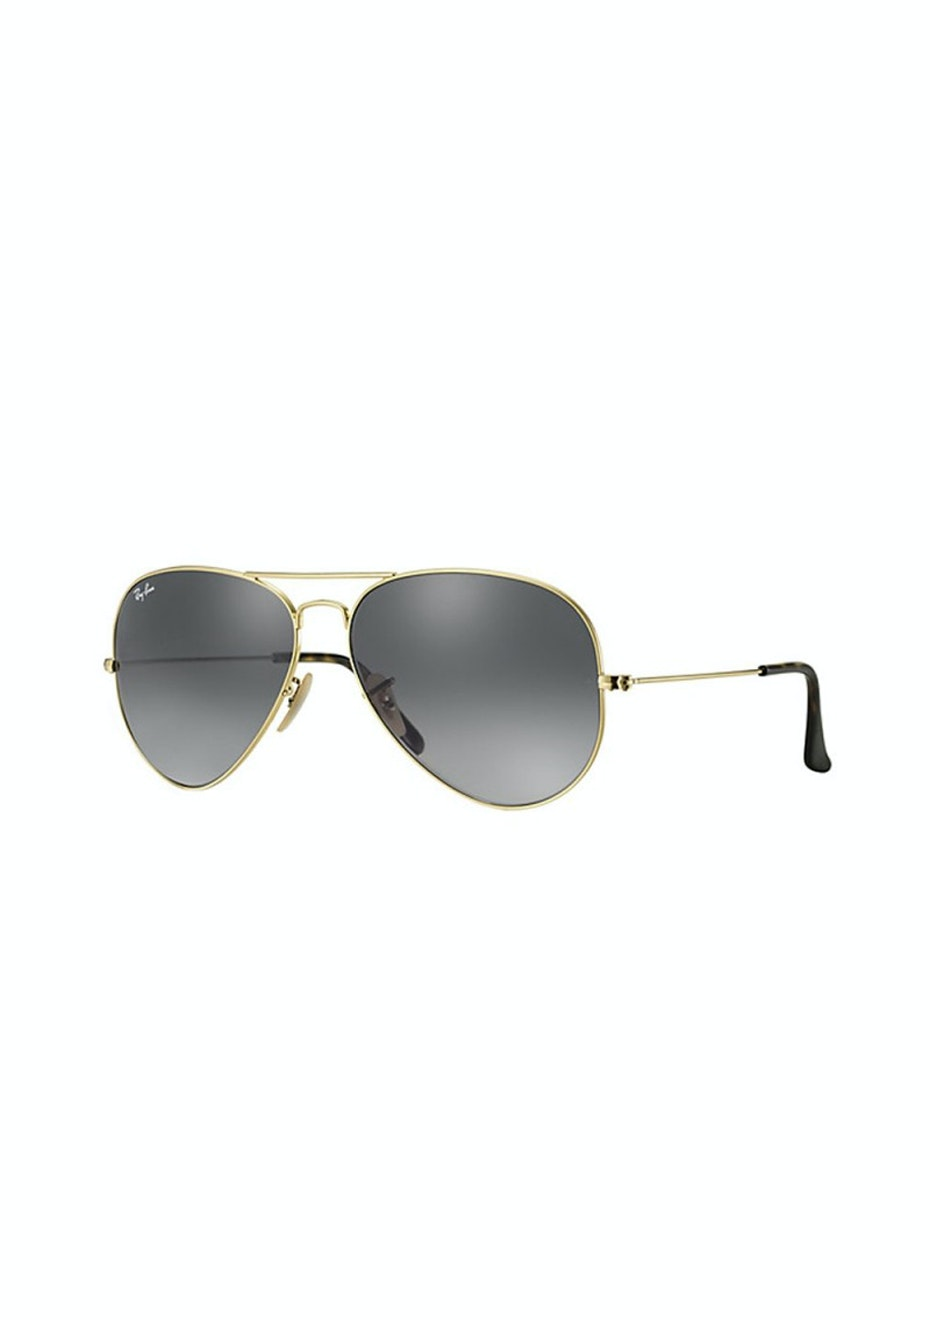 Ray-Ban -  RB3025 181/71/58 - AVIATOR HAVANA COLLECTION Gold